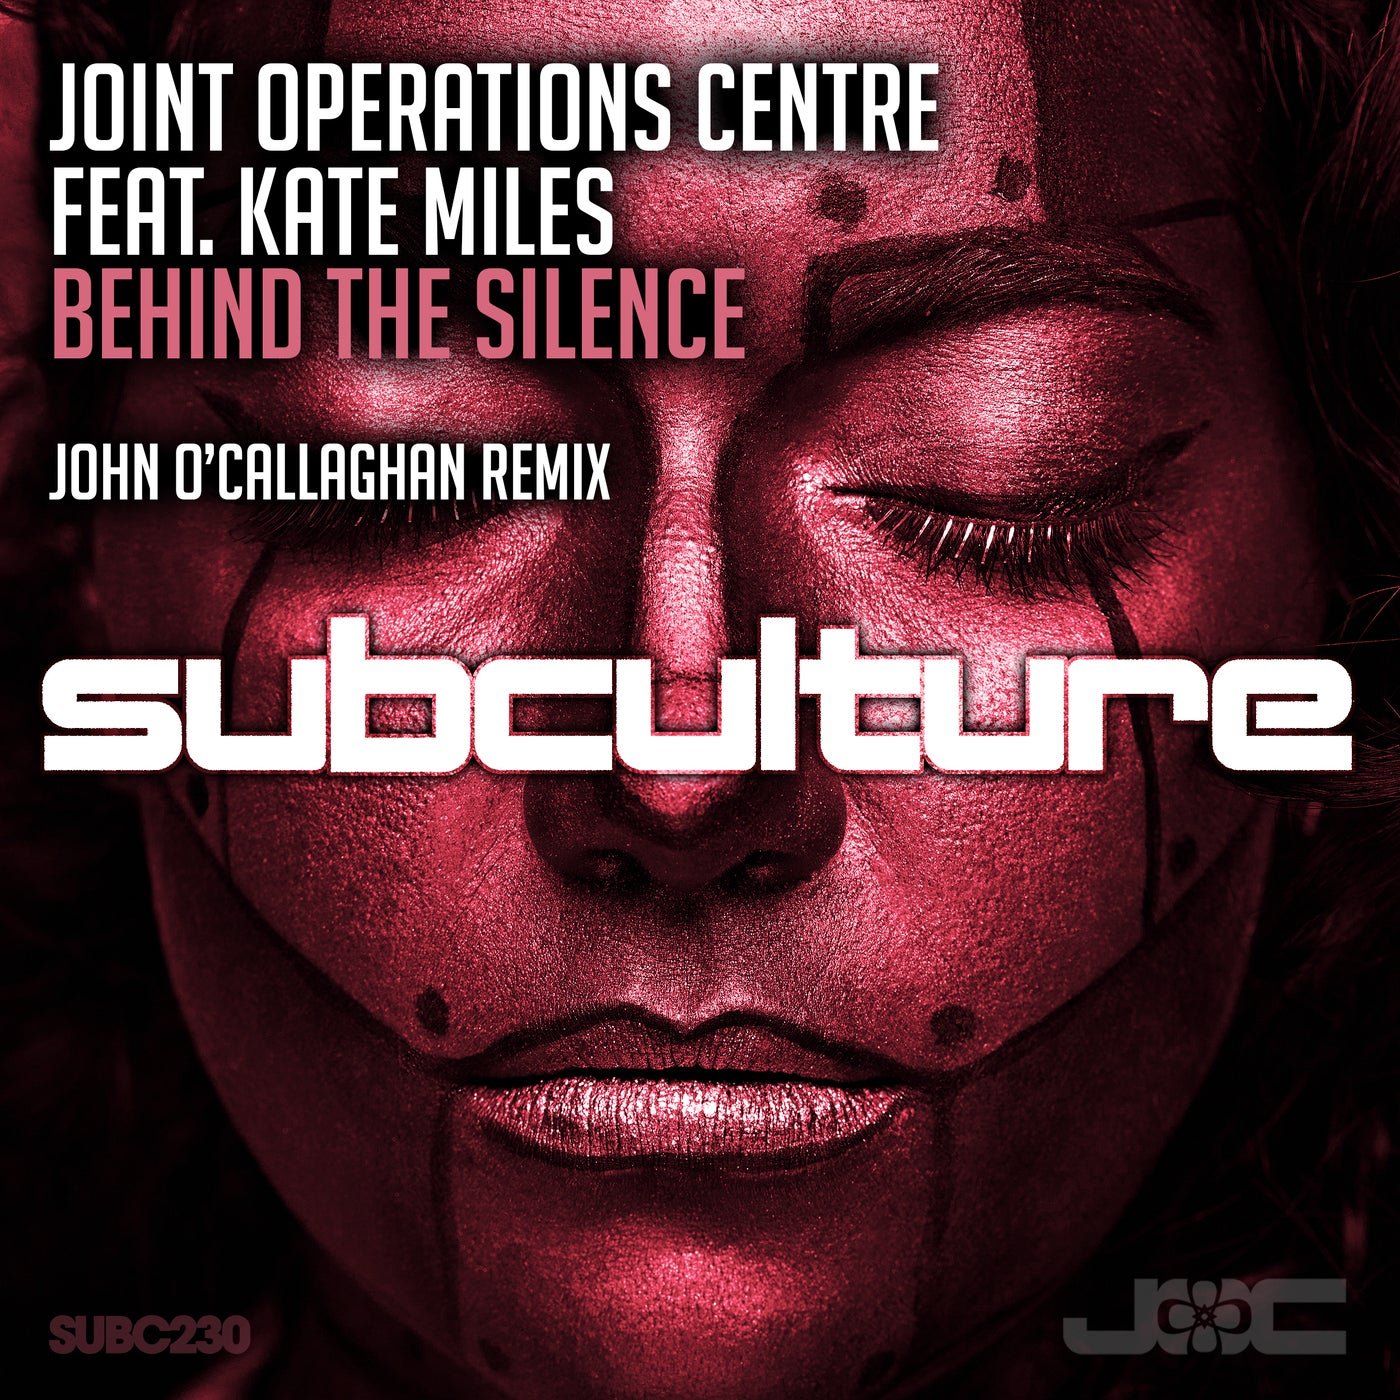 Behind the Silence (John O'Callaghan Remix)